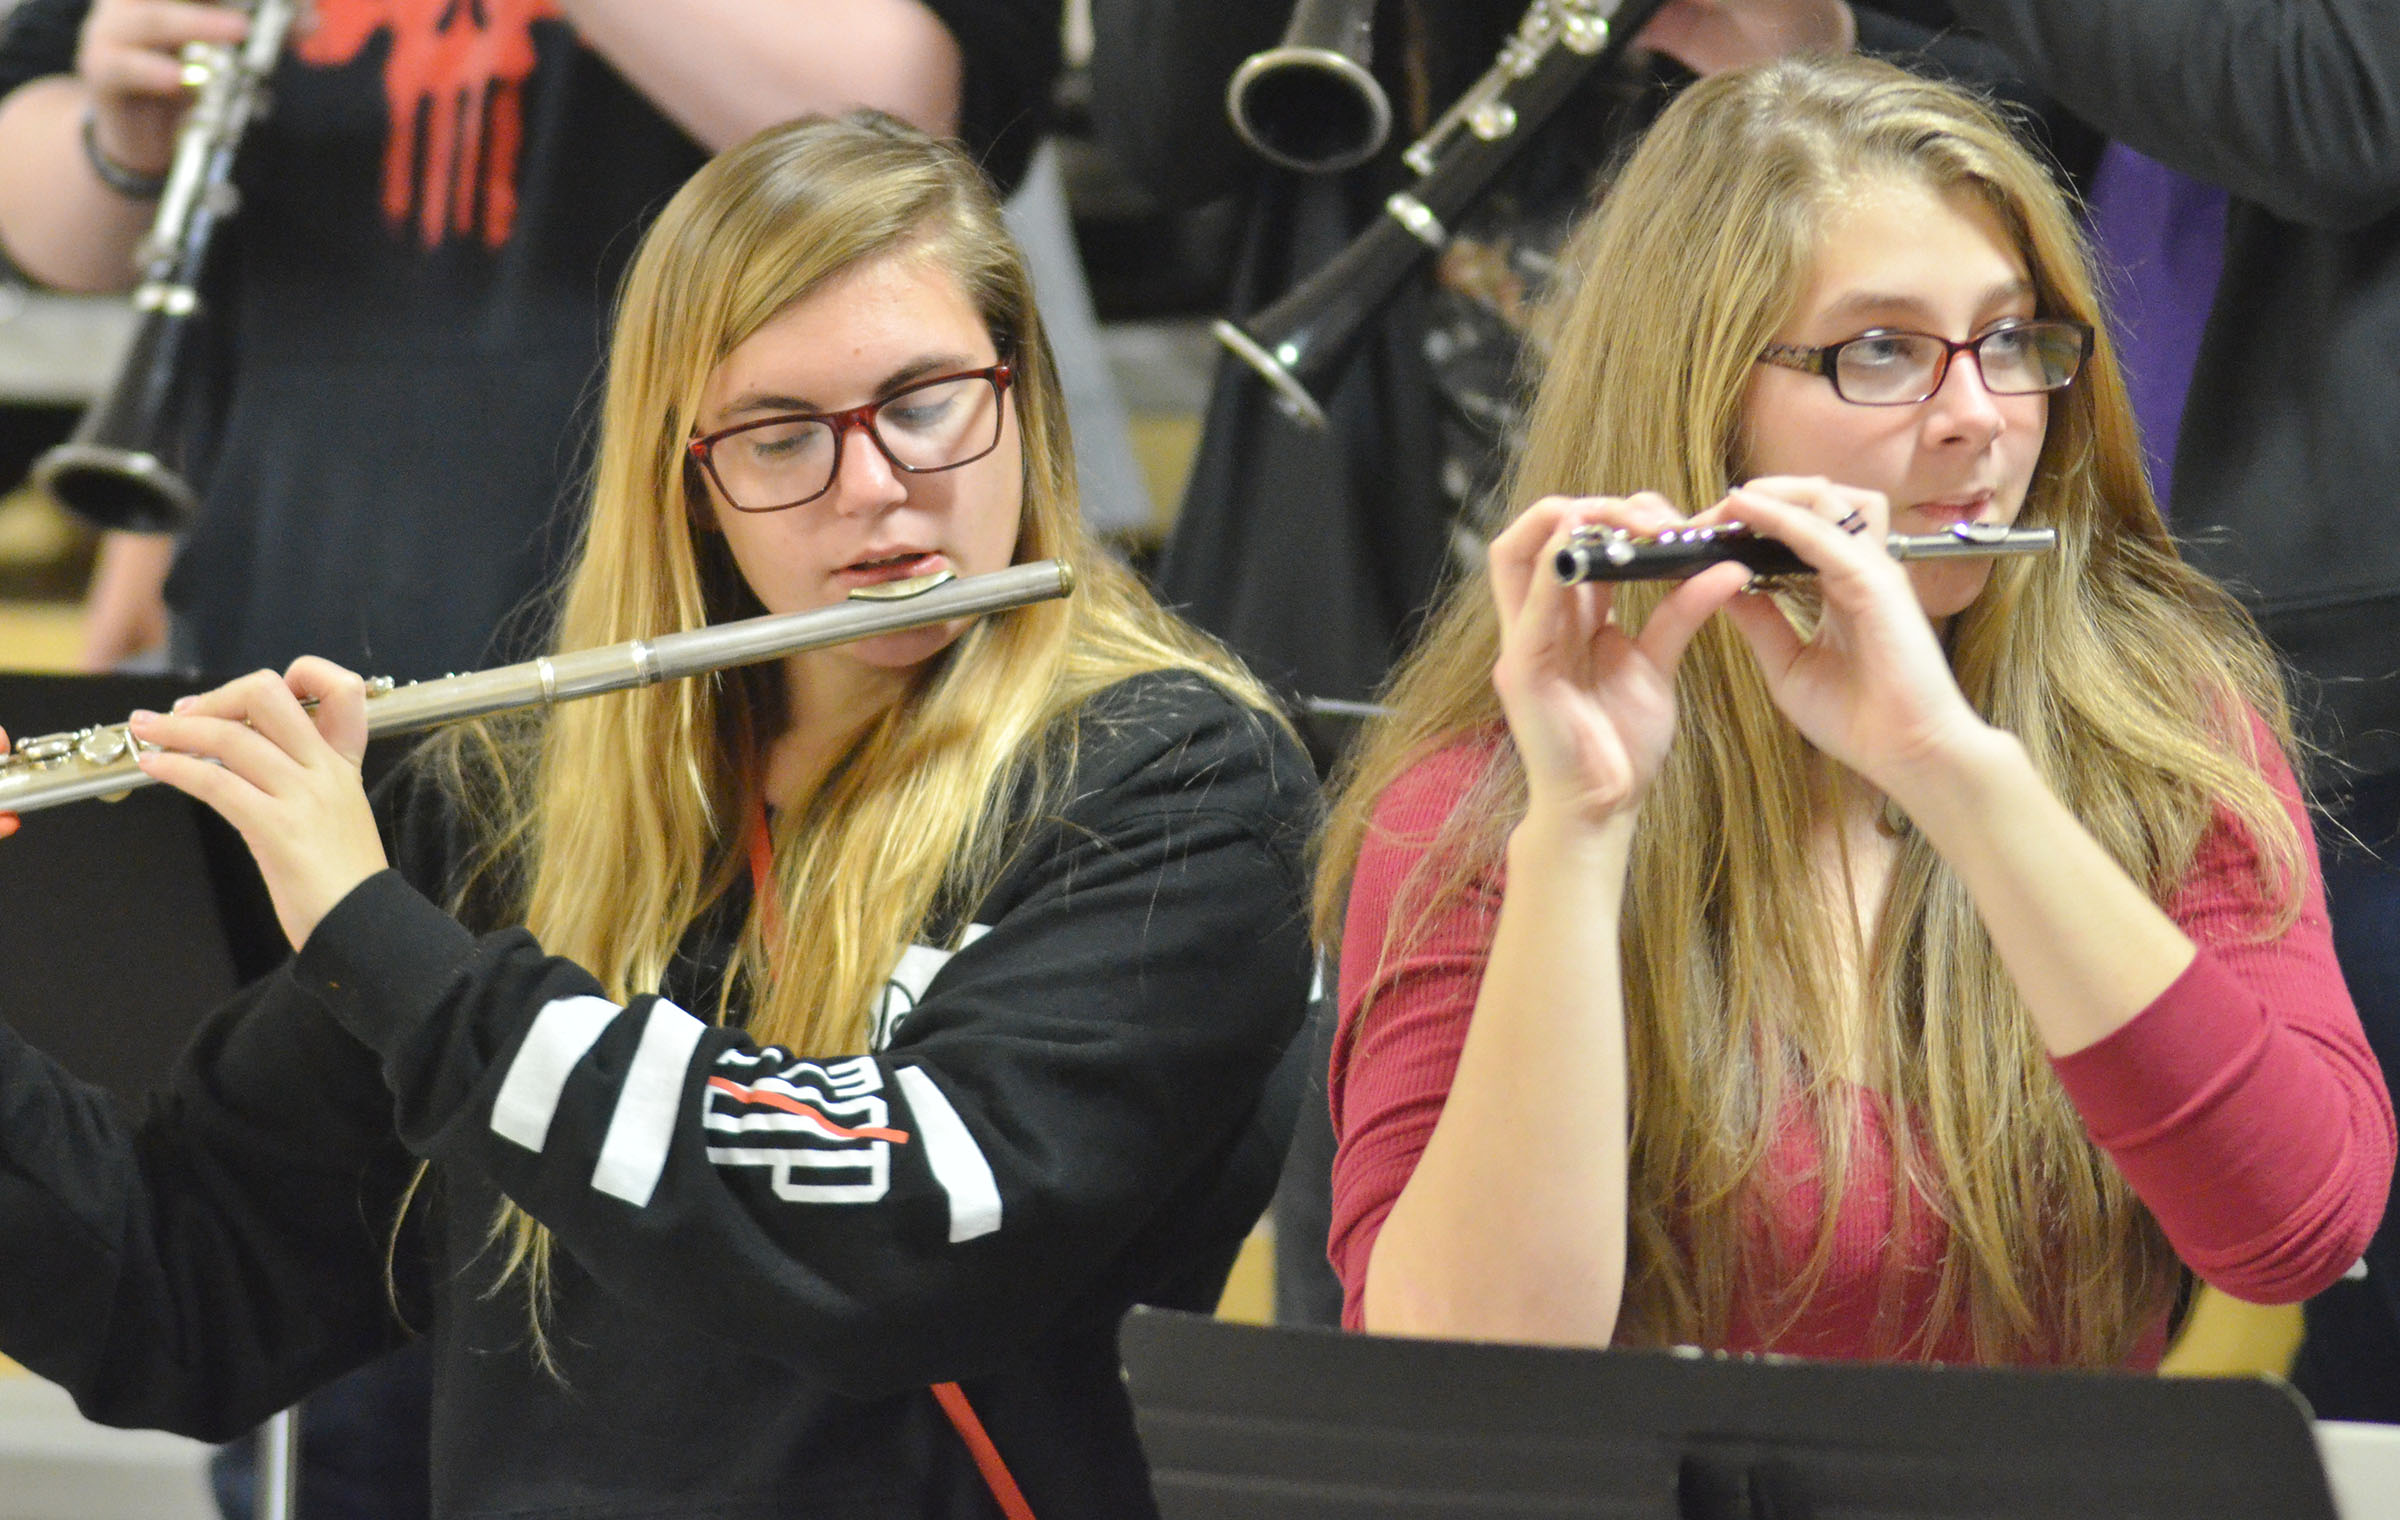 CHS junior Tiffany Kane, at left, and senior Alexis Underwood play with the CHS Pep Band.